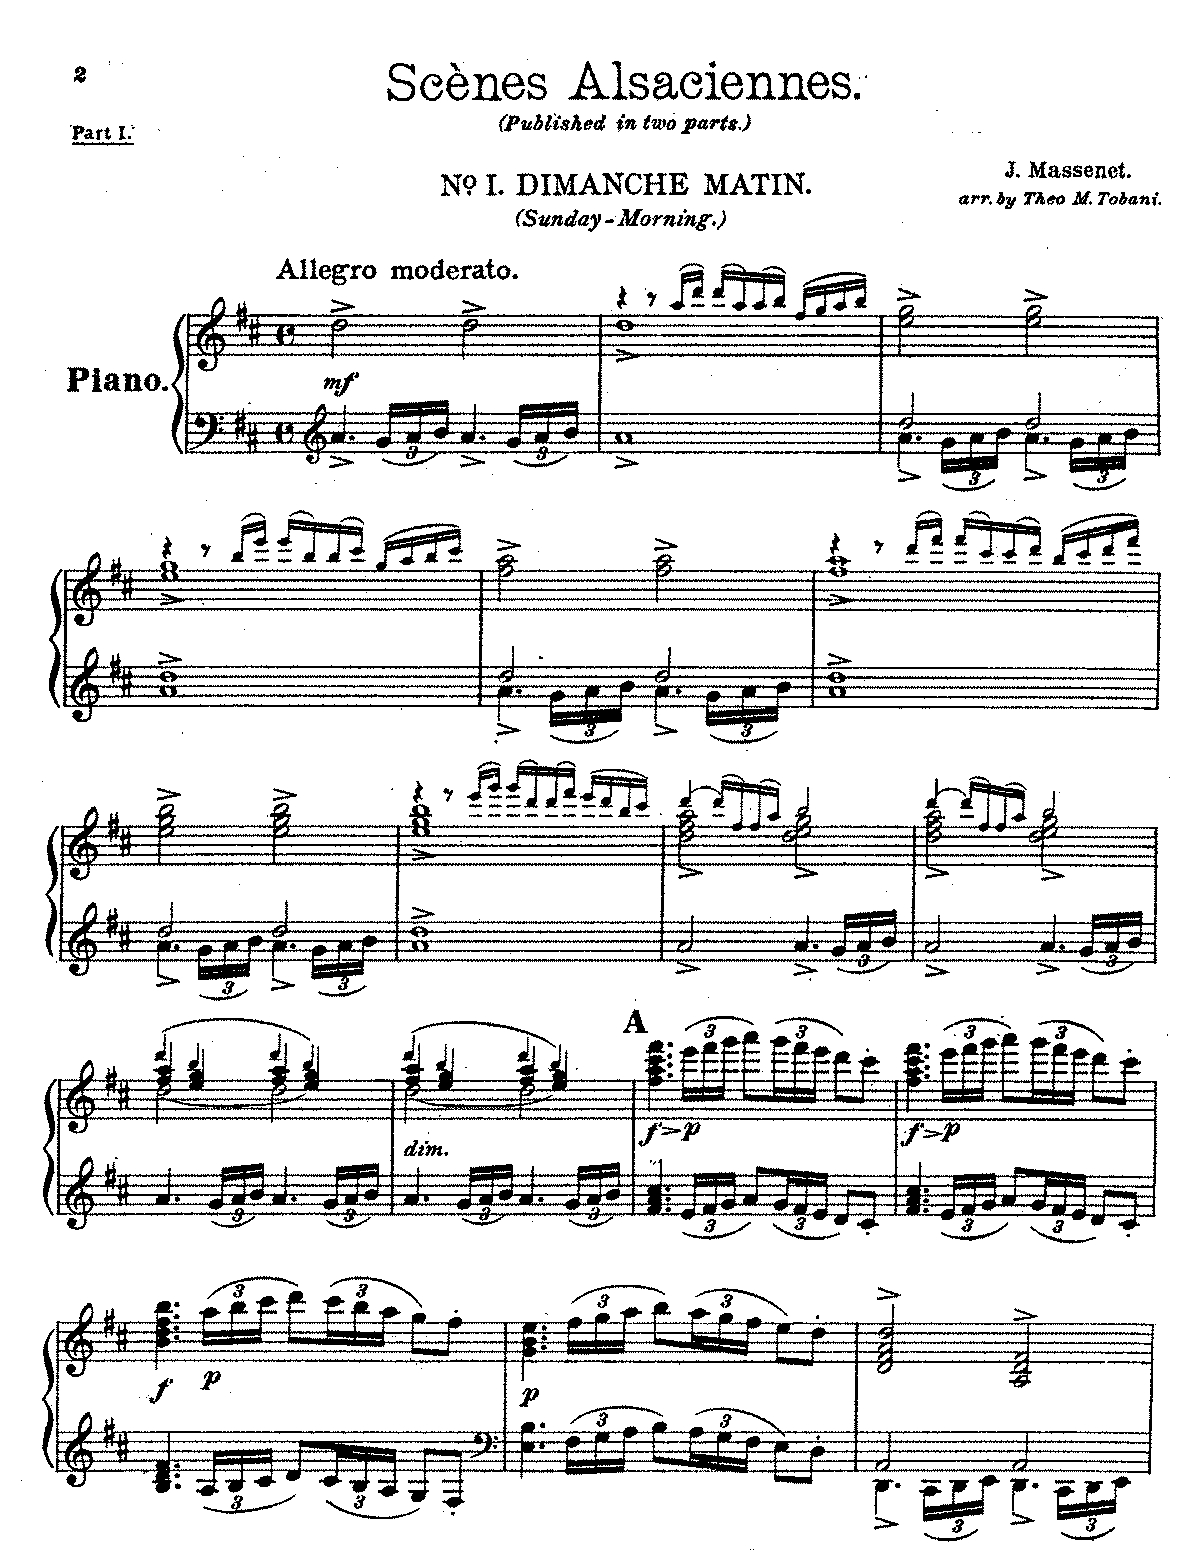 PMLP45763-Massenet - Scenes Alsaciennes Reduction Part1.pdf